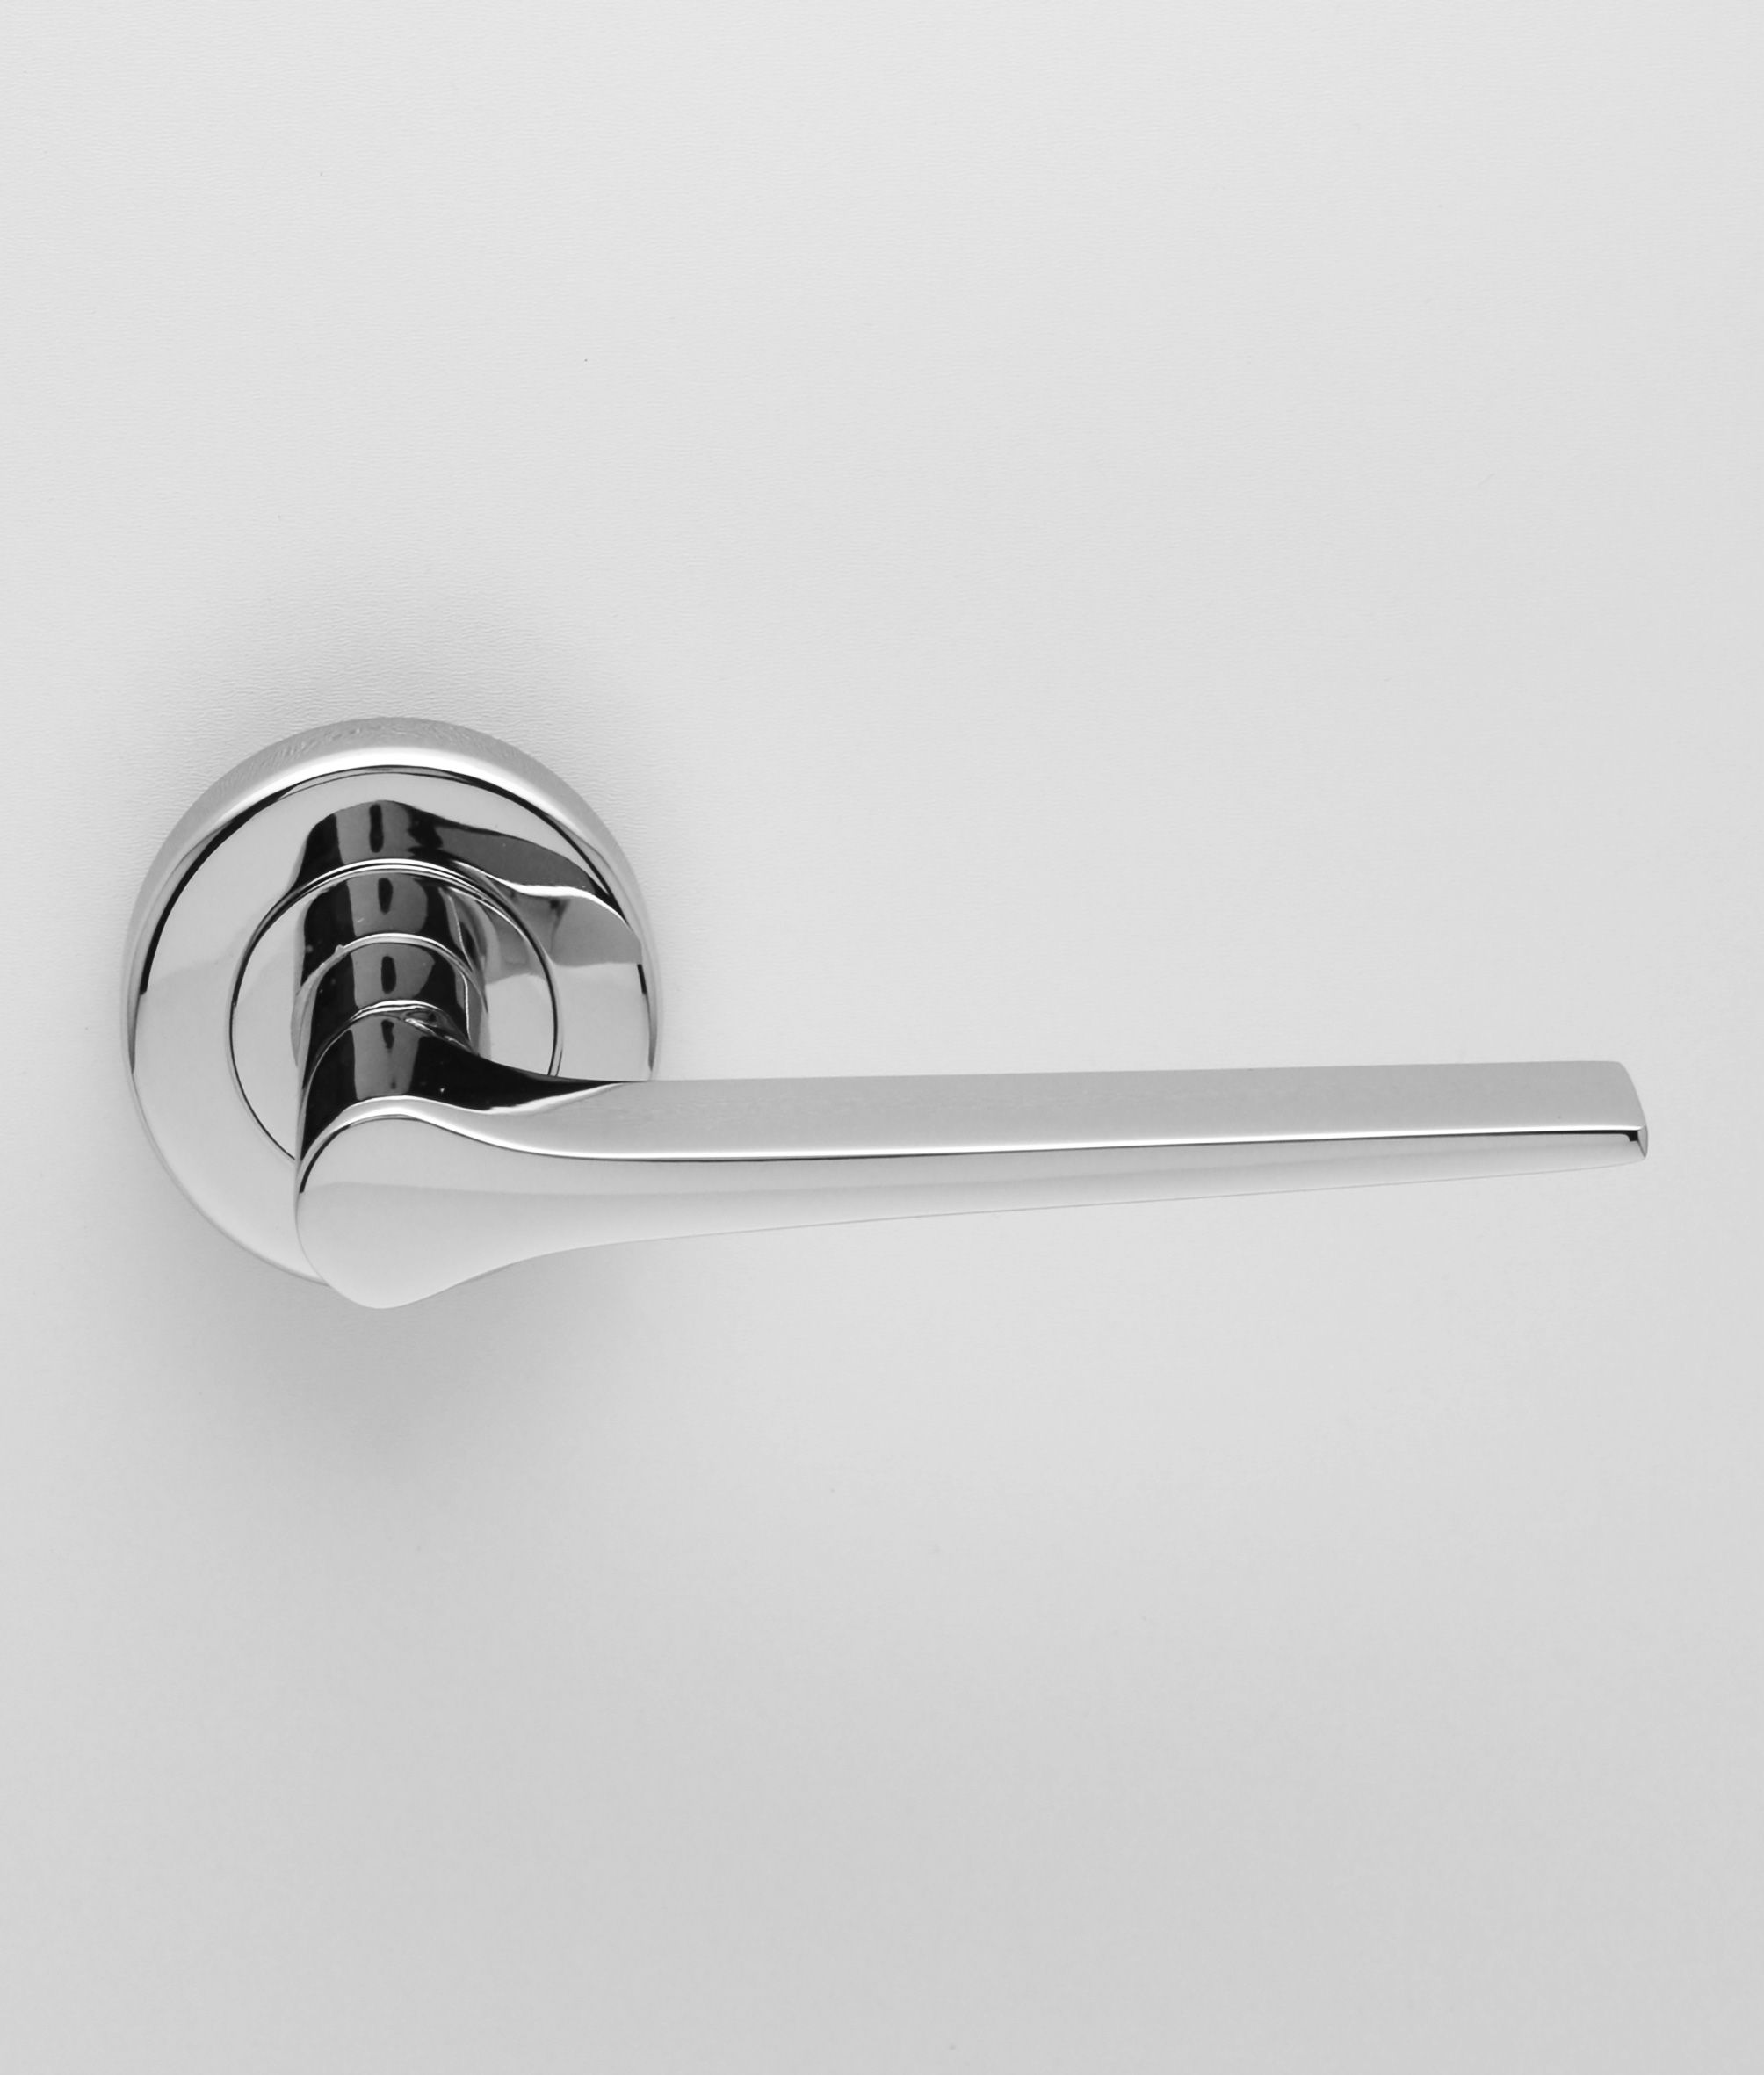 Architectural Ironmongery Online Door Ironmongery Suppliers in UK  A \u0026 H Brass & Architectural Ironmongery Online Door Ironmongery Suppliers in UK ...